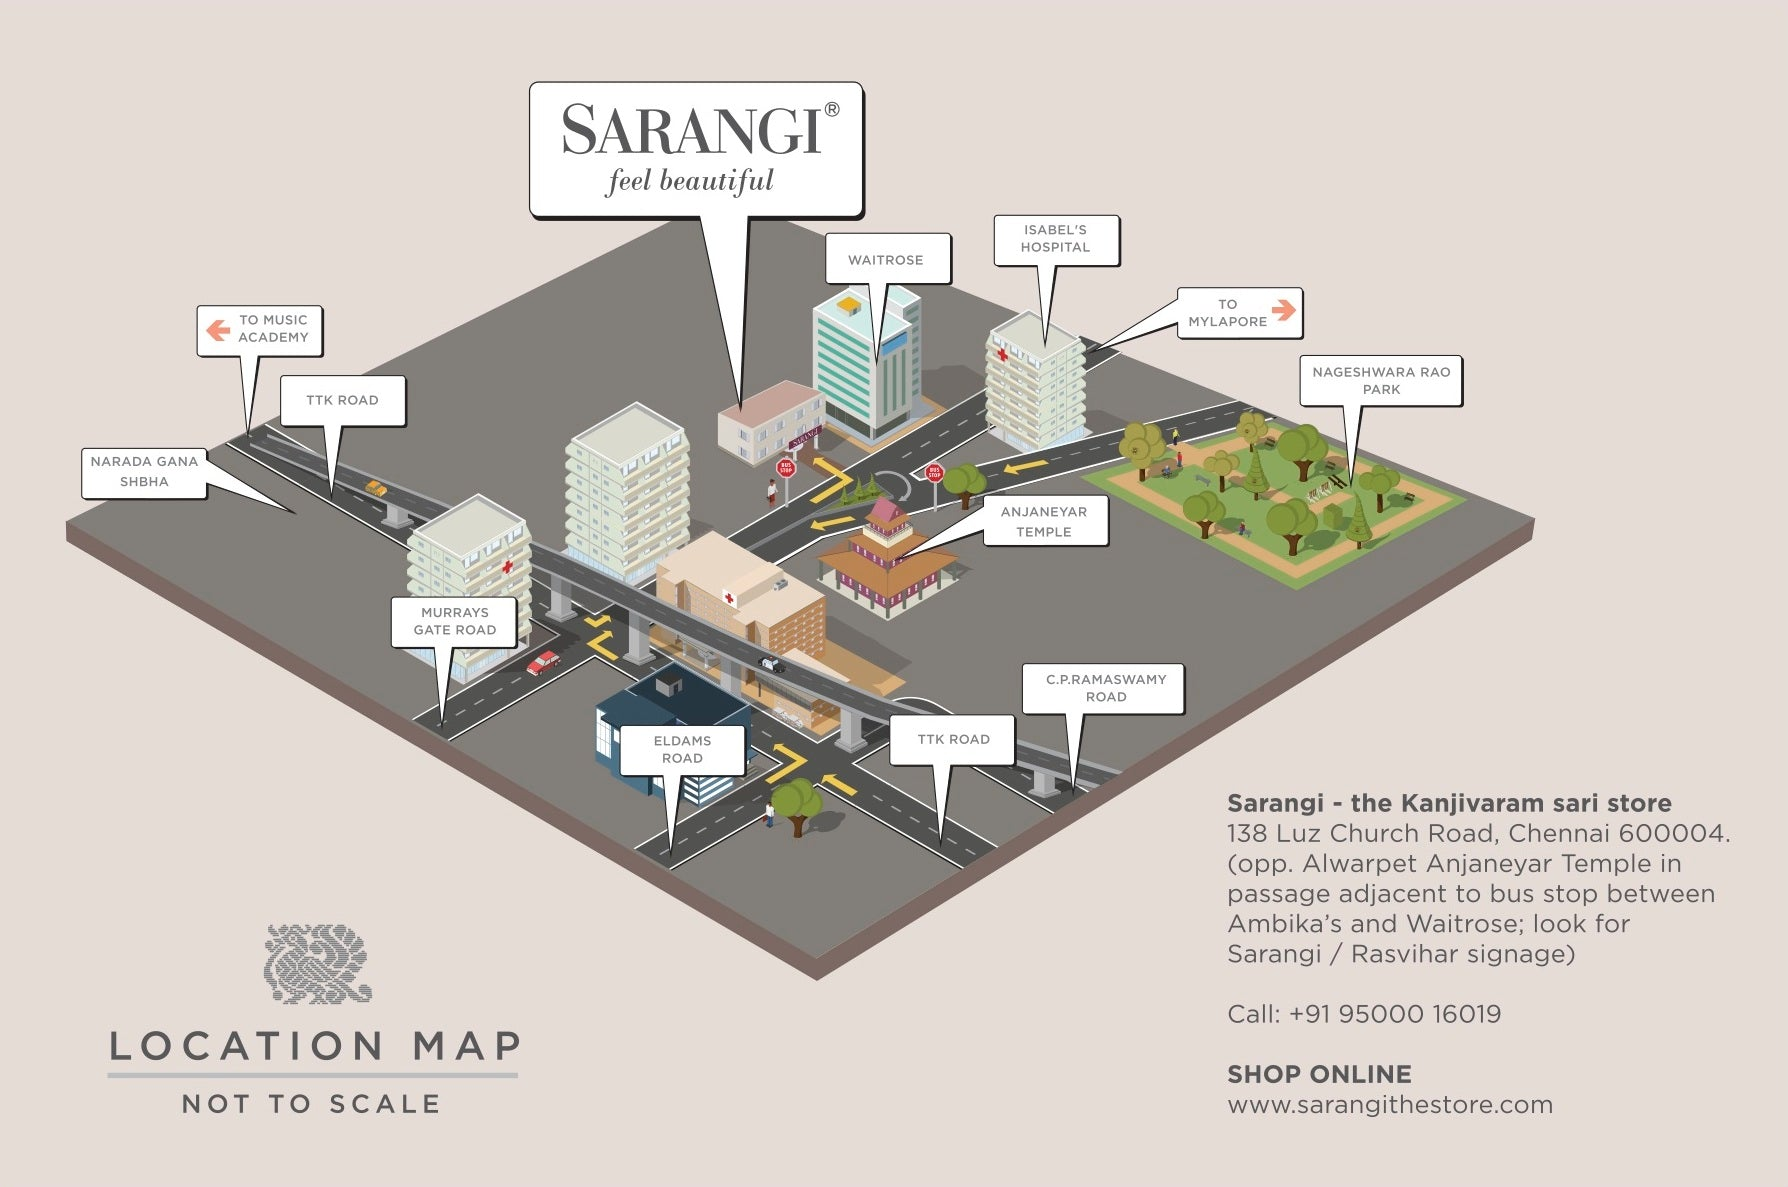 3D Image map of Sarangi, the Kanjivaram sari store